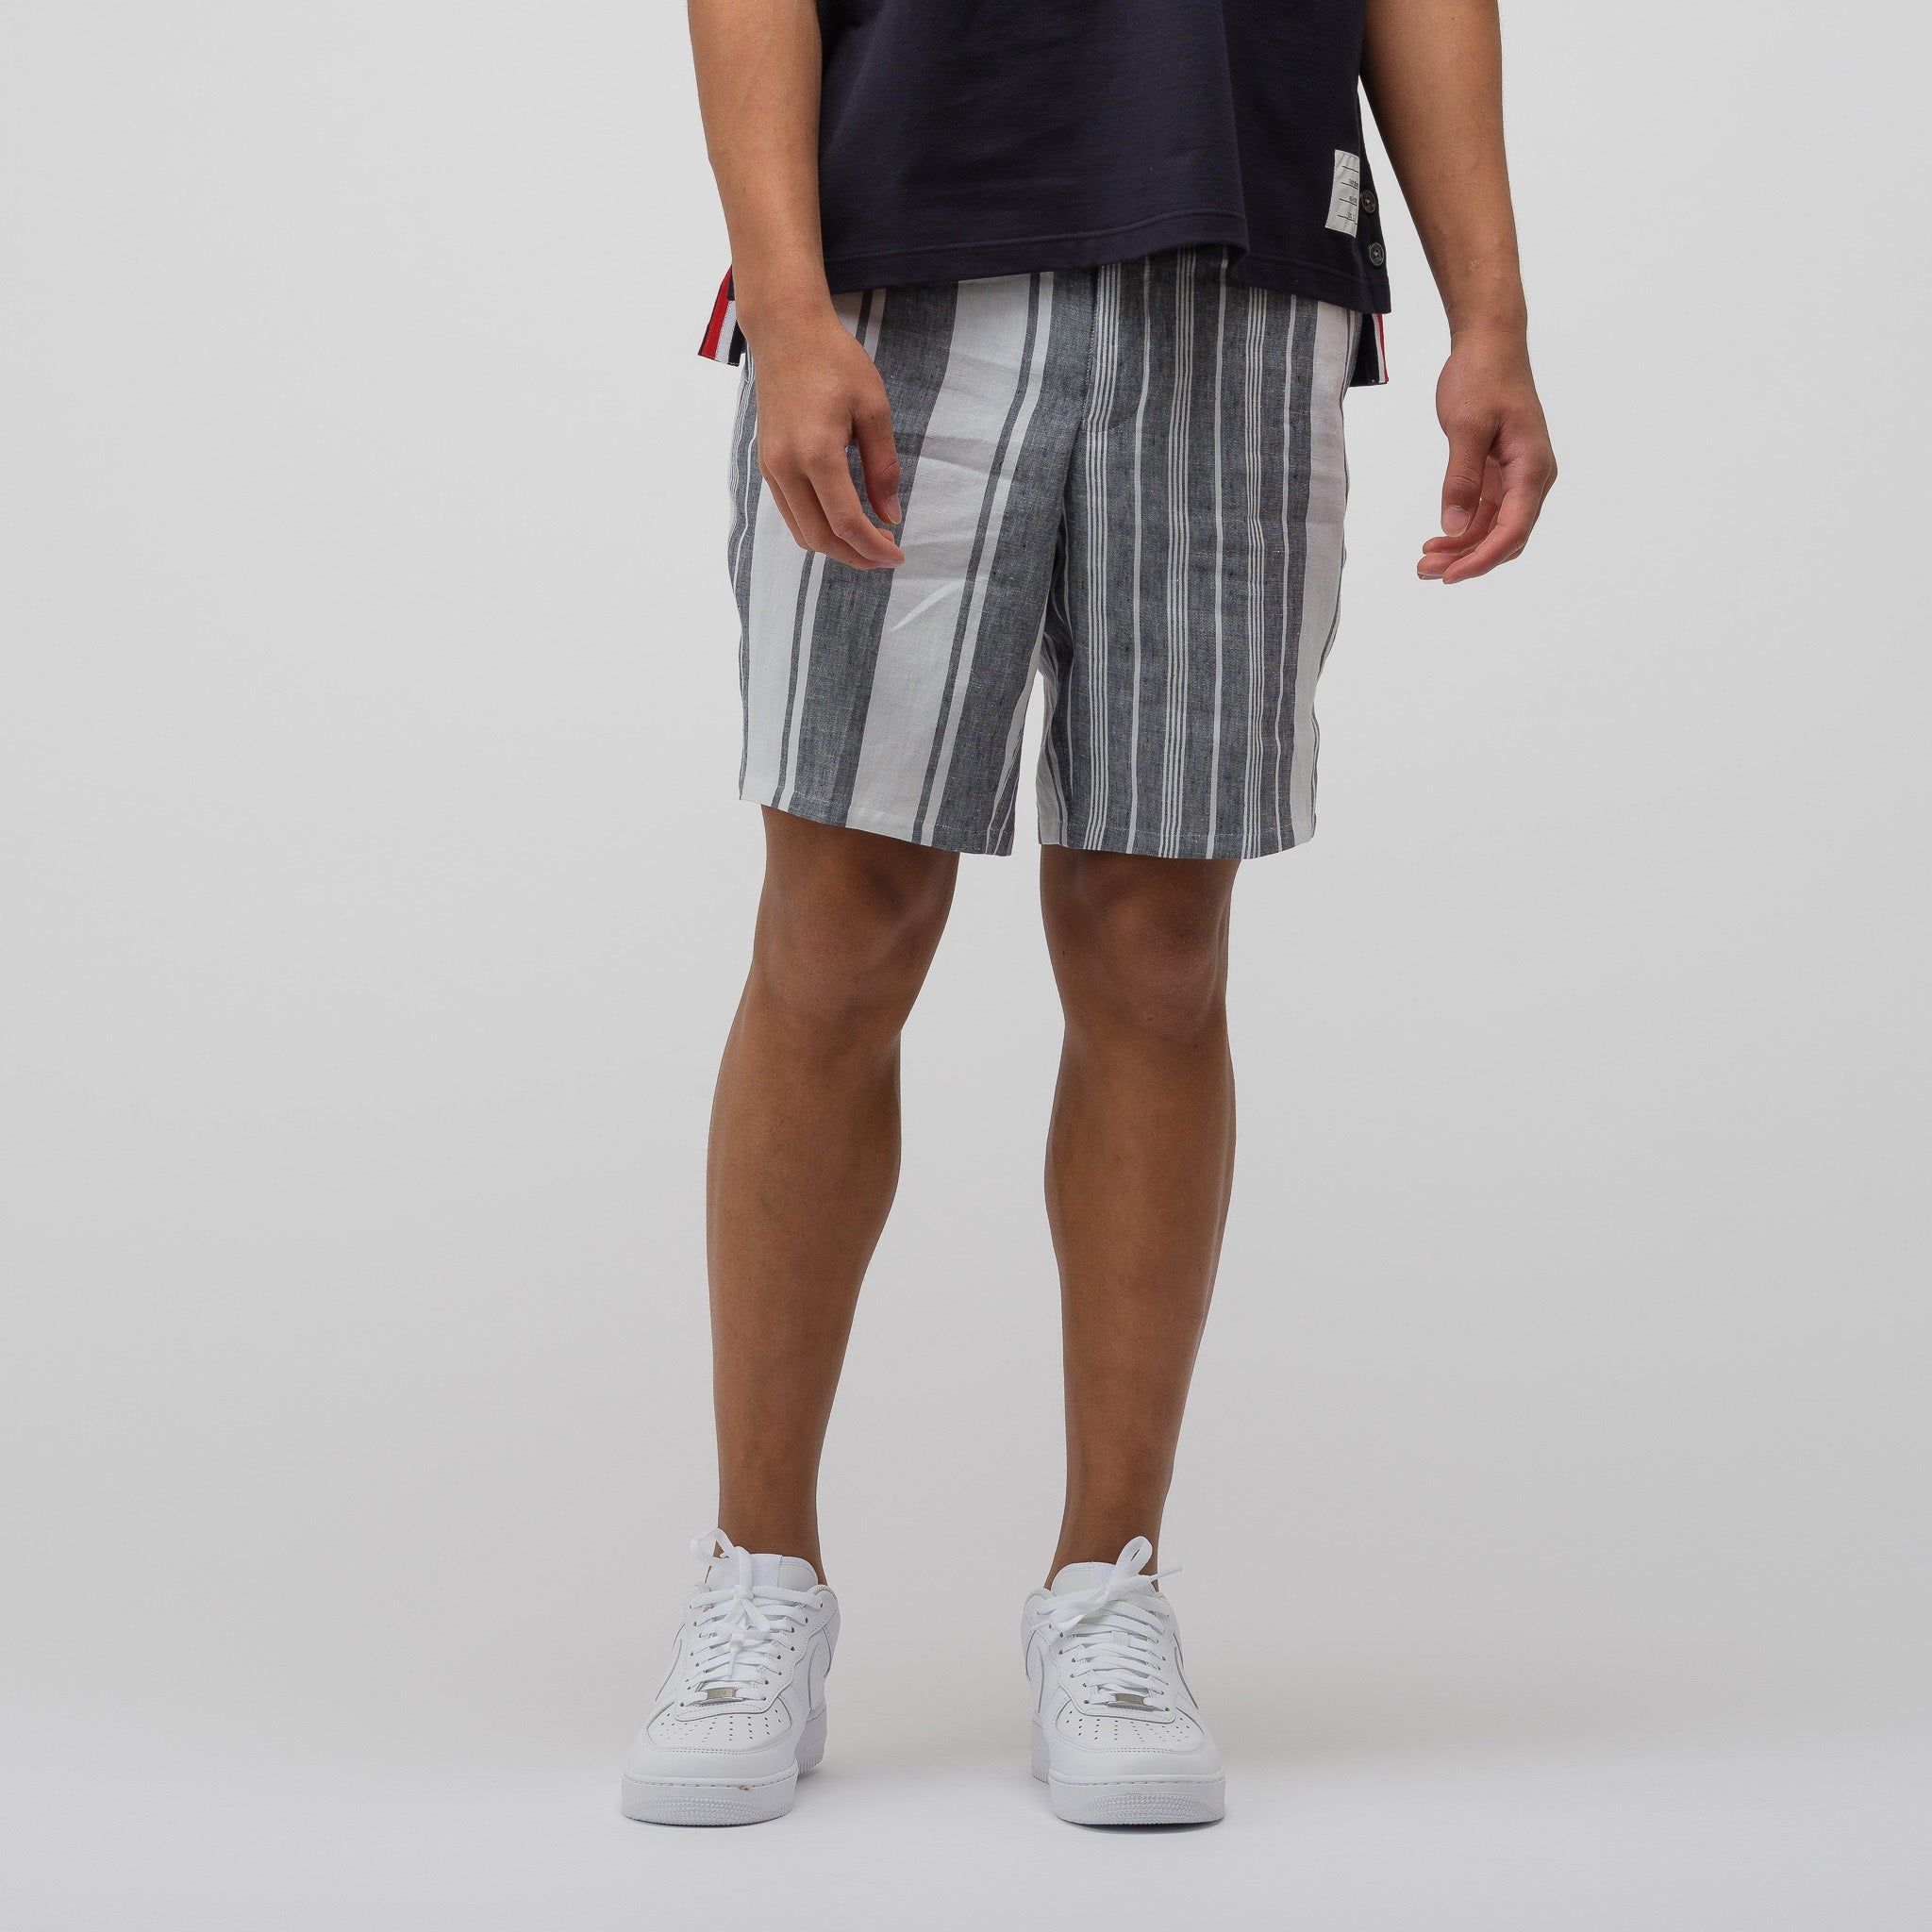 Unconstructed Short in Navy/White